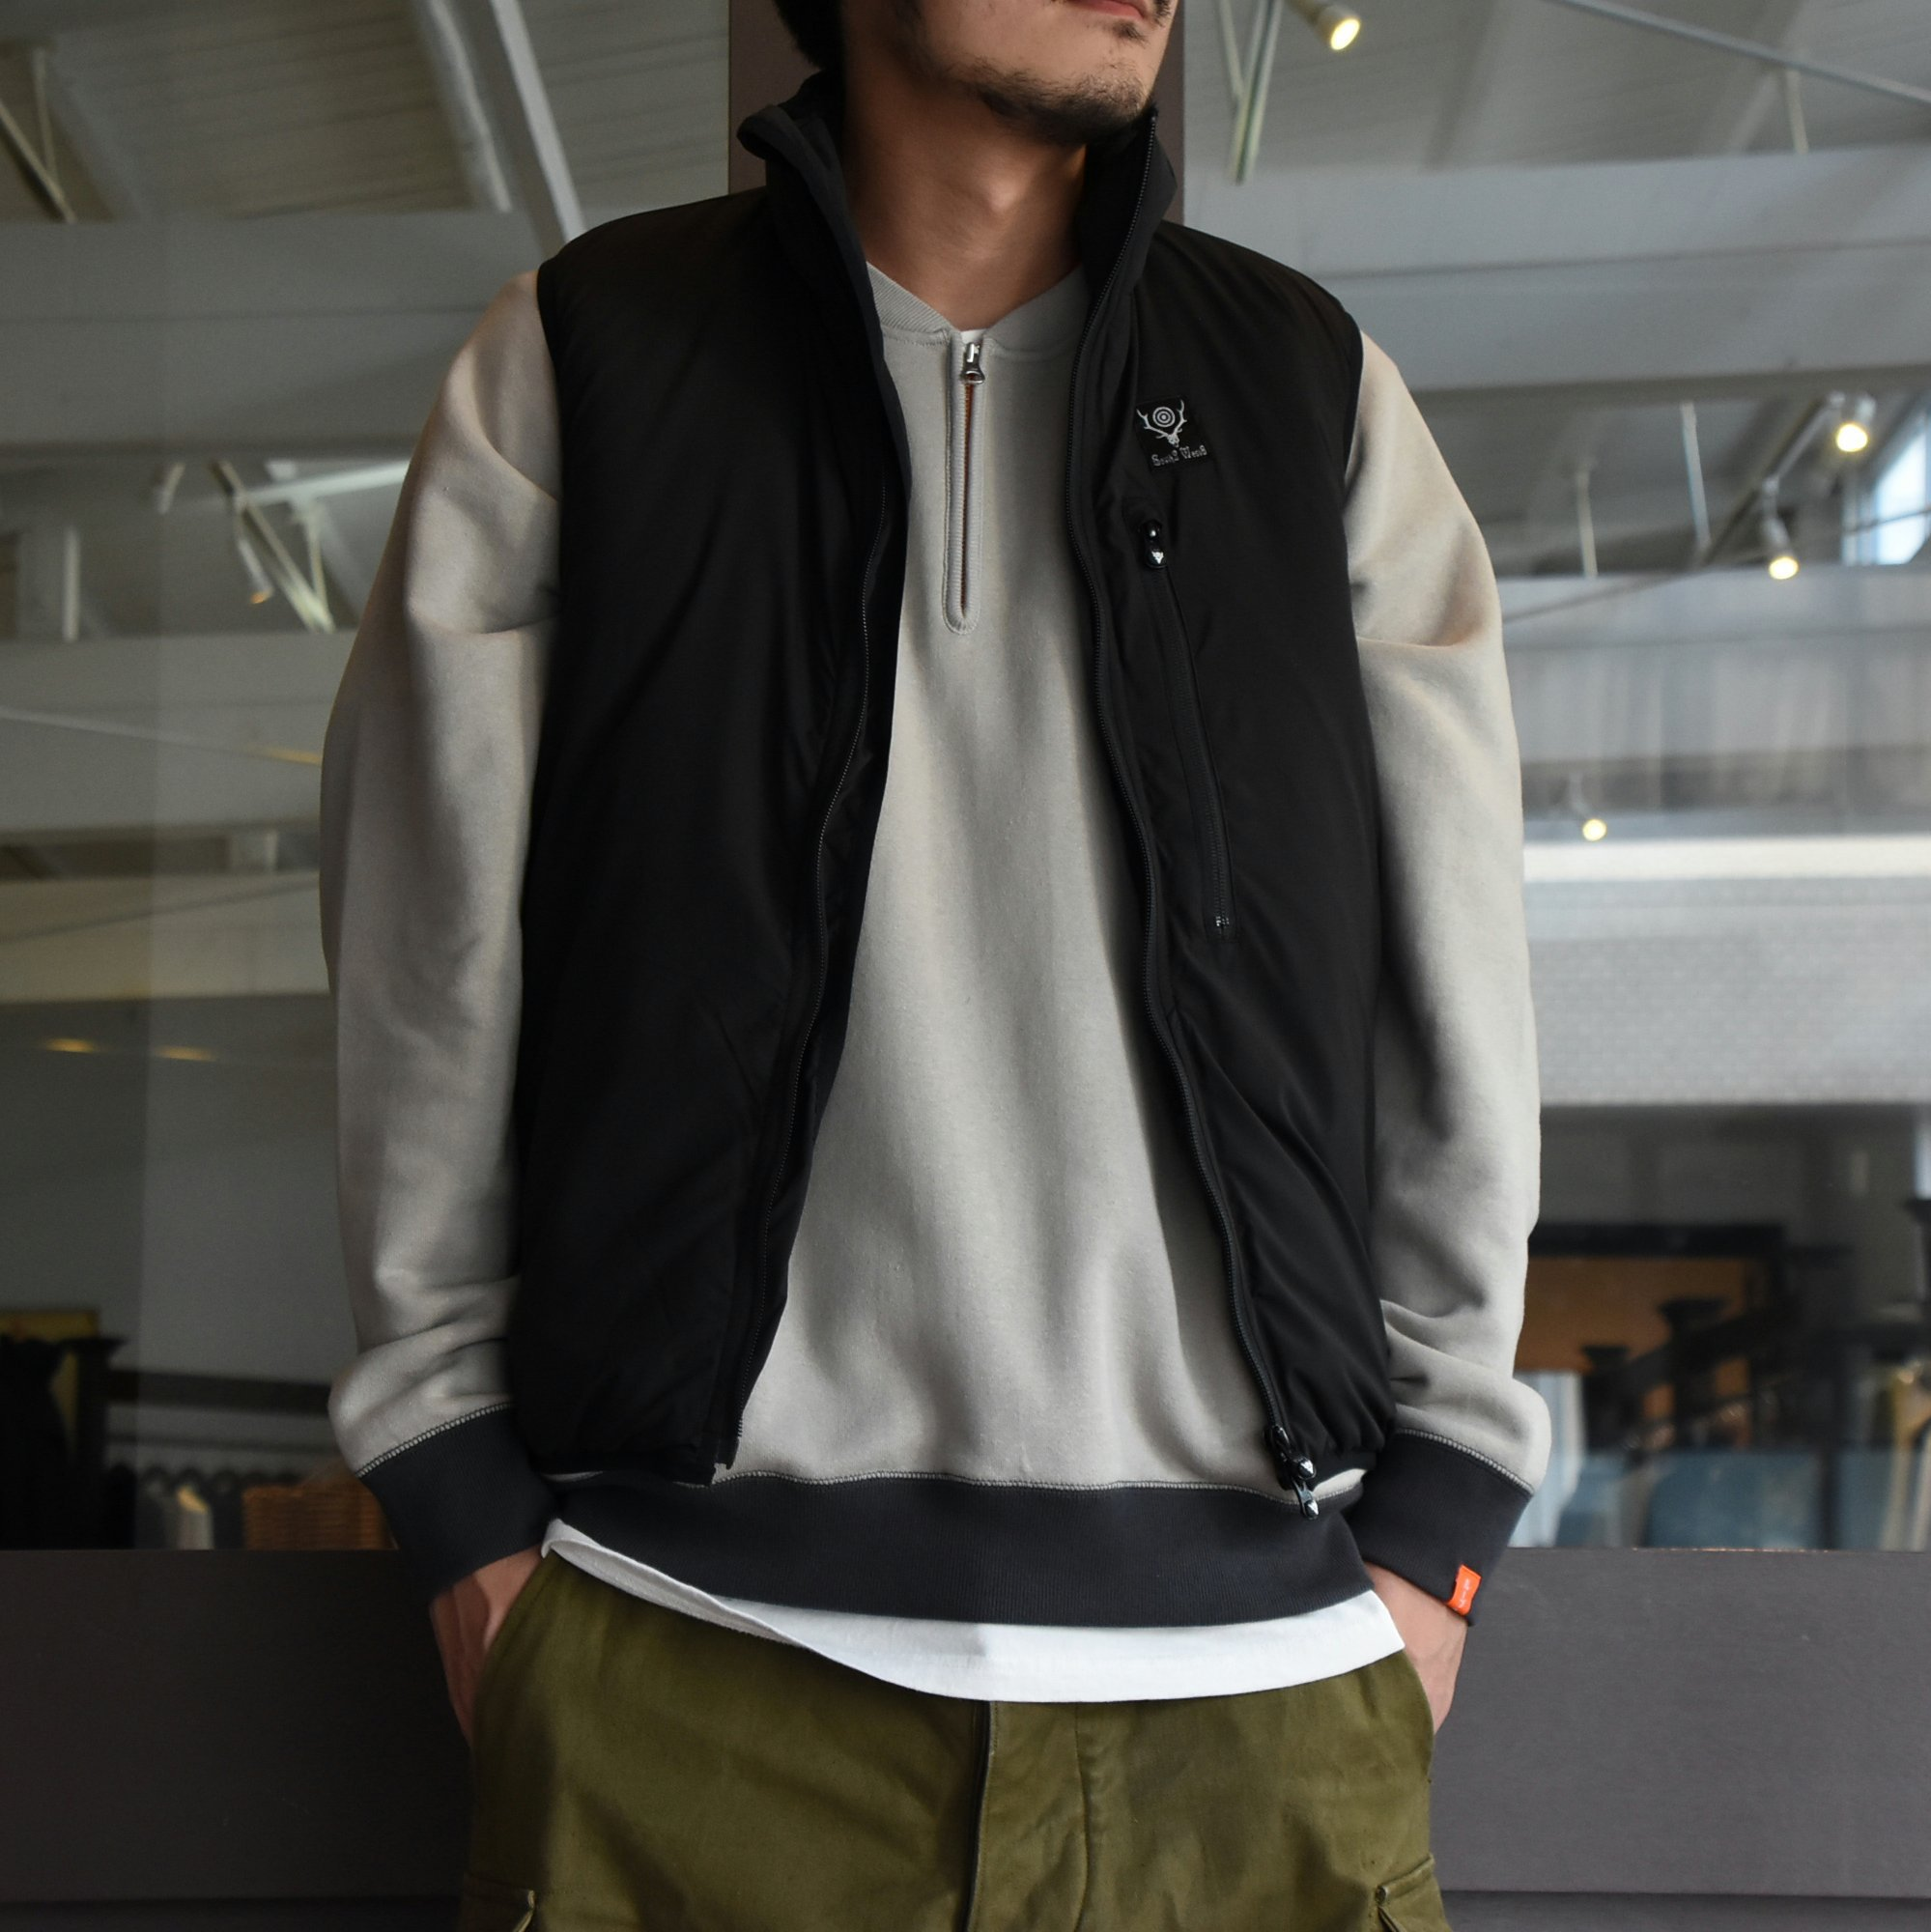 【2020】South2 West8(サウスツーウエストエイト)Insulator Vest-Peach Skin-BLACK- #HM813(1)